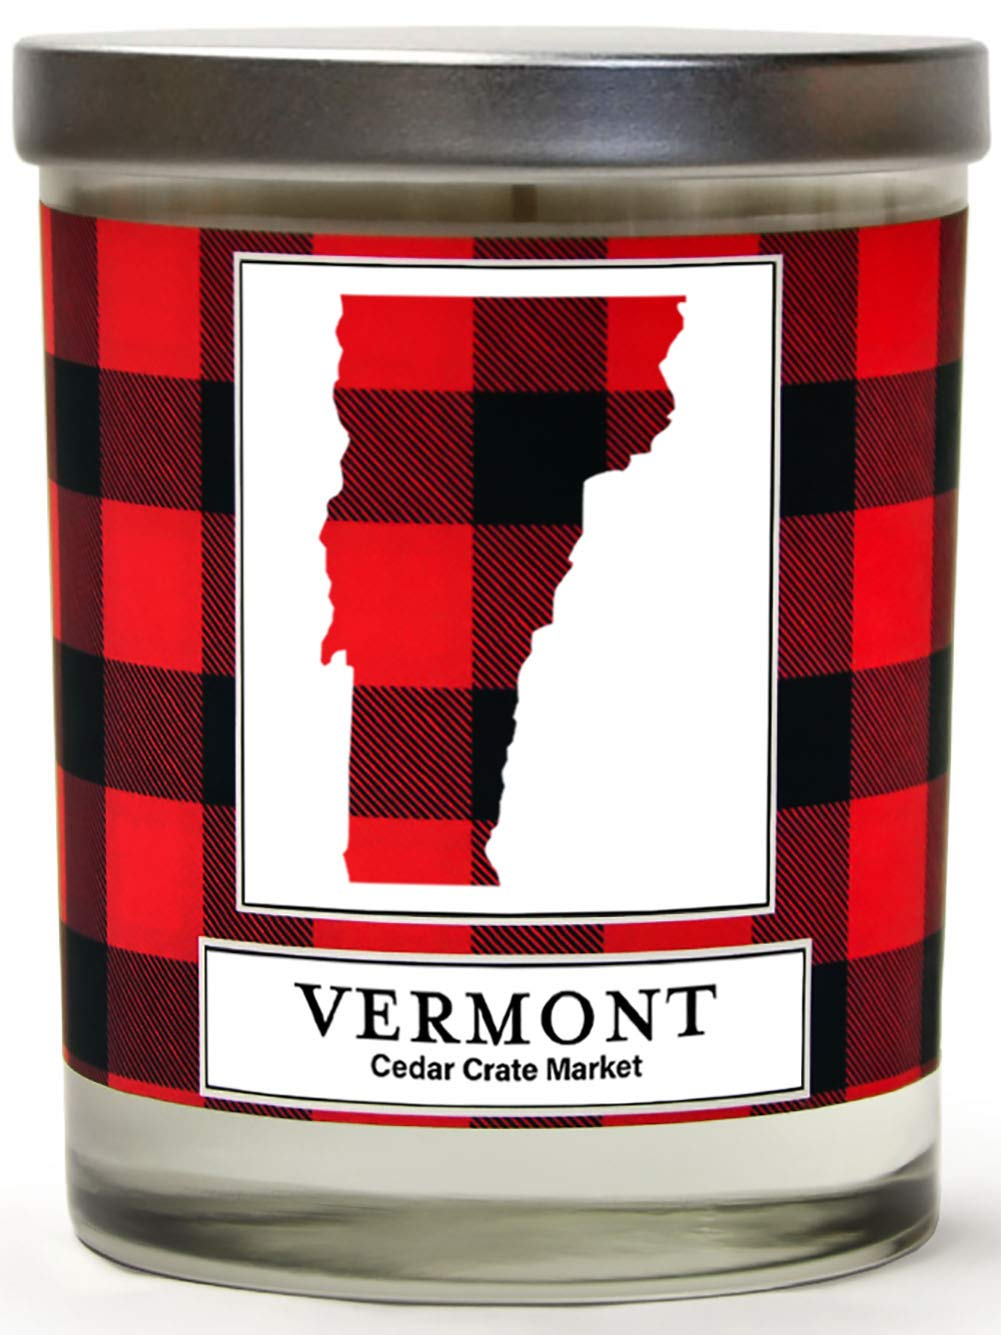 Vermont Buffalo Plaid Scented Soy Candle | Fraser Fir, Pine Needle, Cedarwood | 10 Oz. Glass Jar Candle | Made in The USA | Decorative Candles | Going Away Gifts for Friends | State Candles